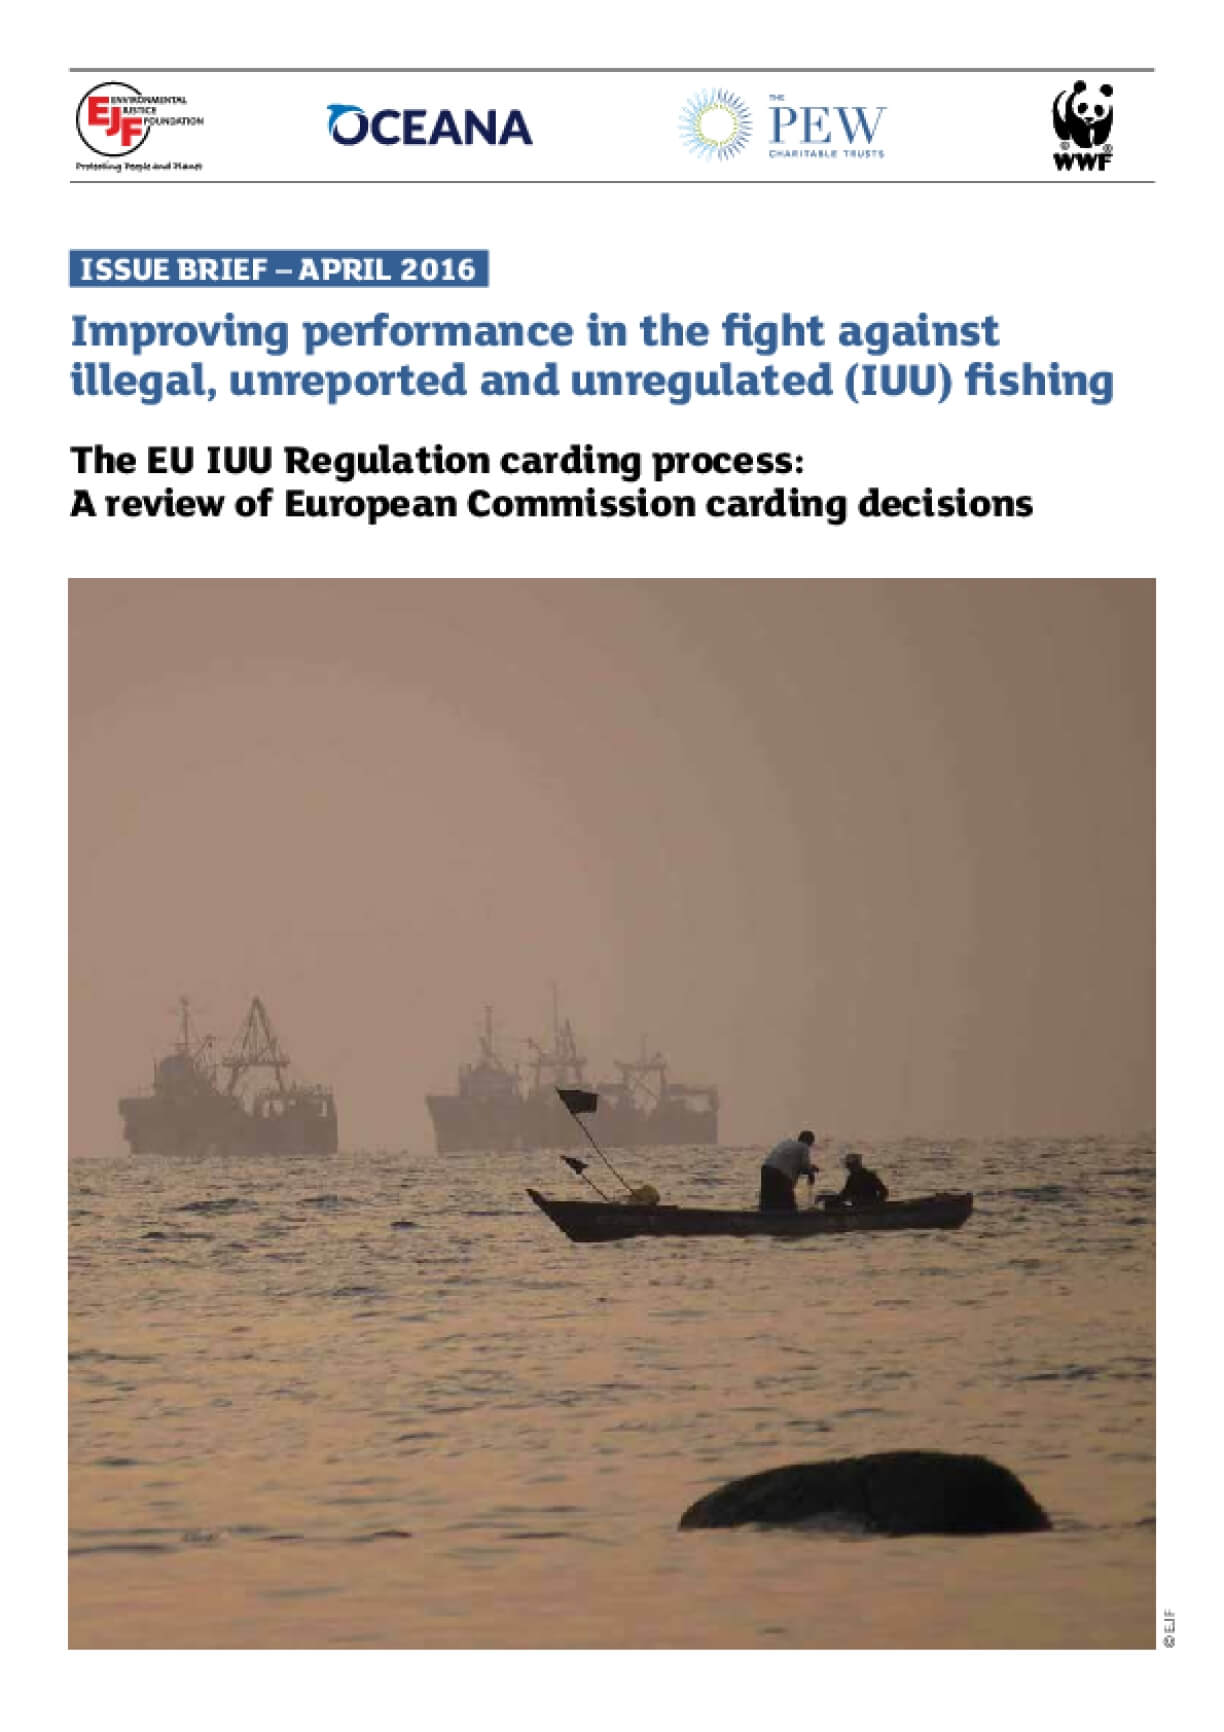 Improving Performance in the Fight Against Illegal, Unreported and Unregulated (IUU) Fishing